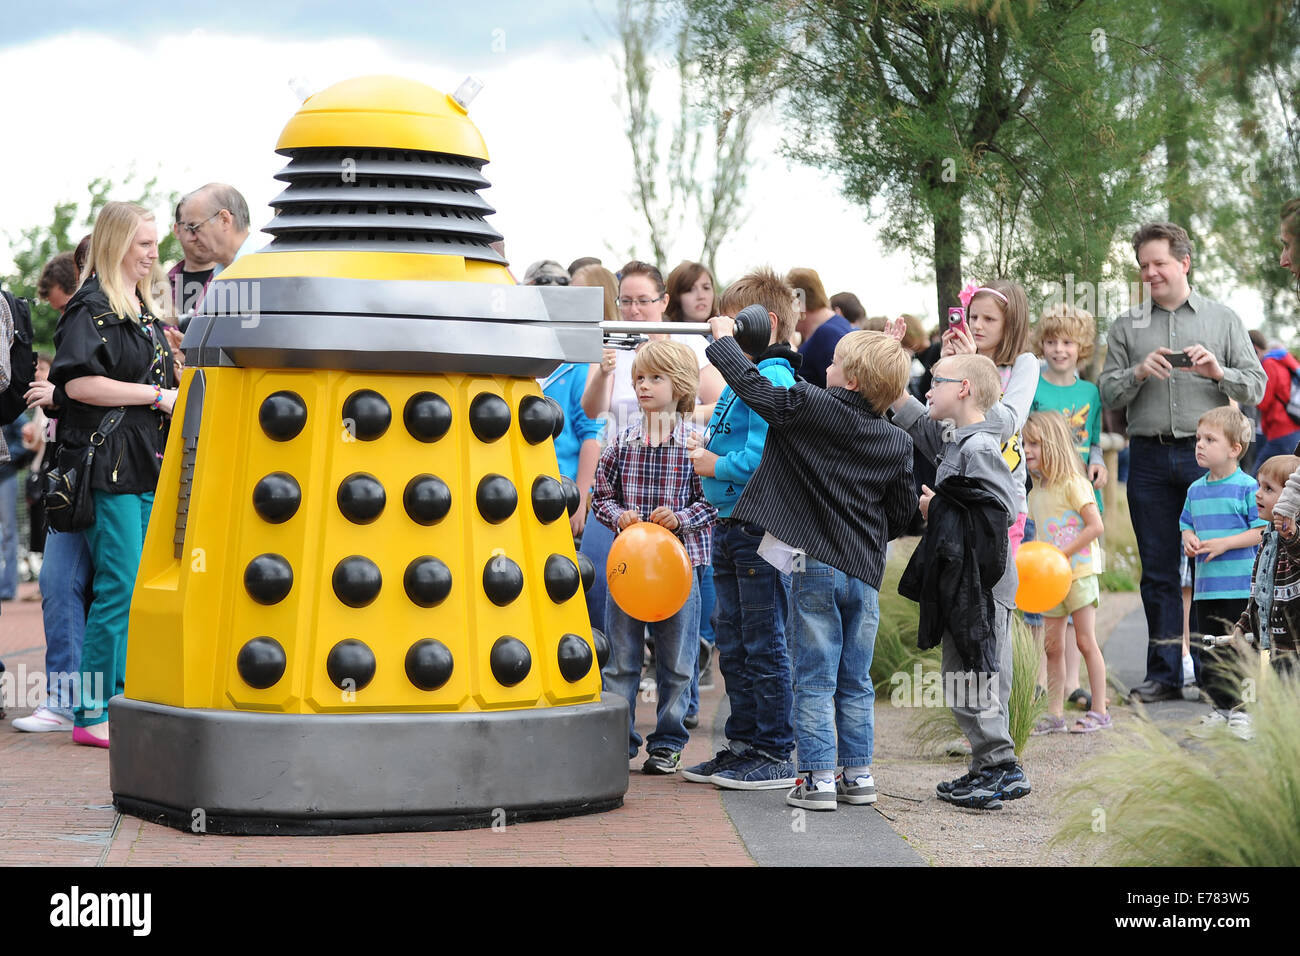 Doctor Who fans at the Doctor Who Experience at Cardiff Bay, South Wales. - Stock Image